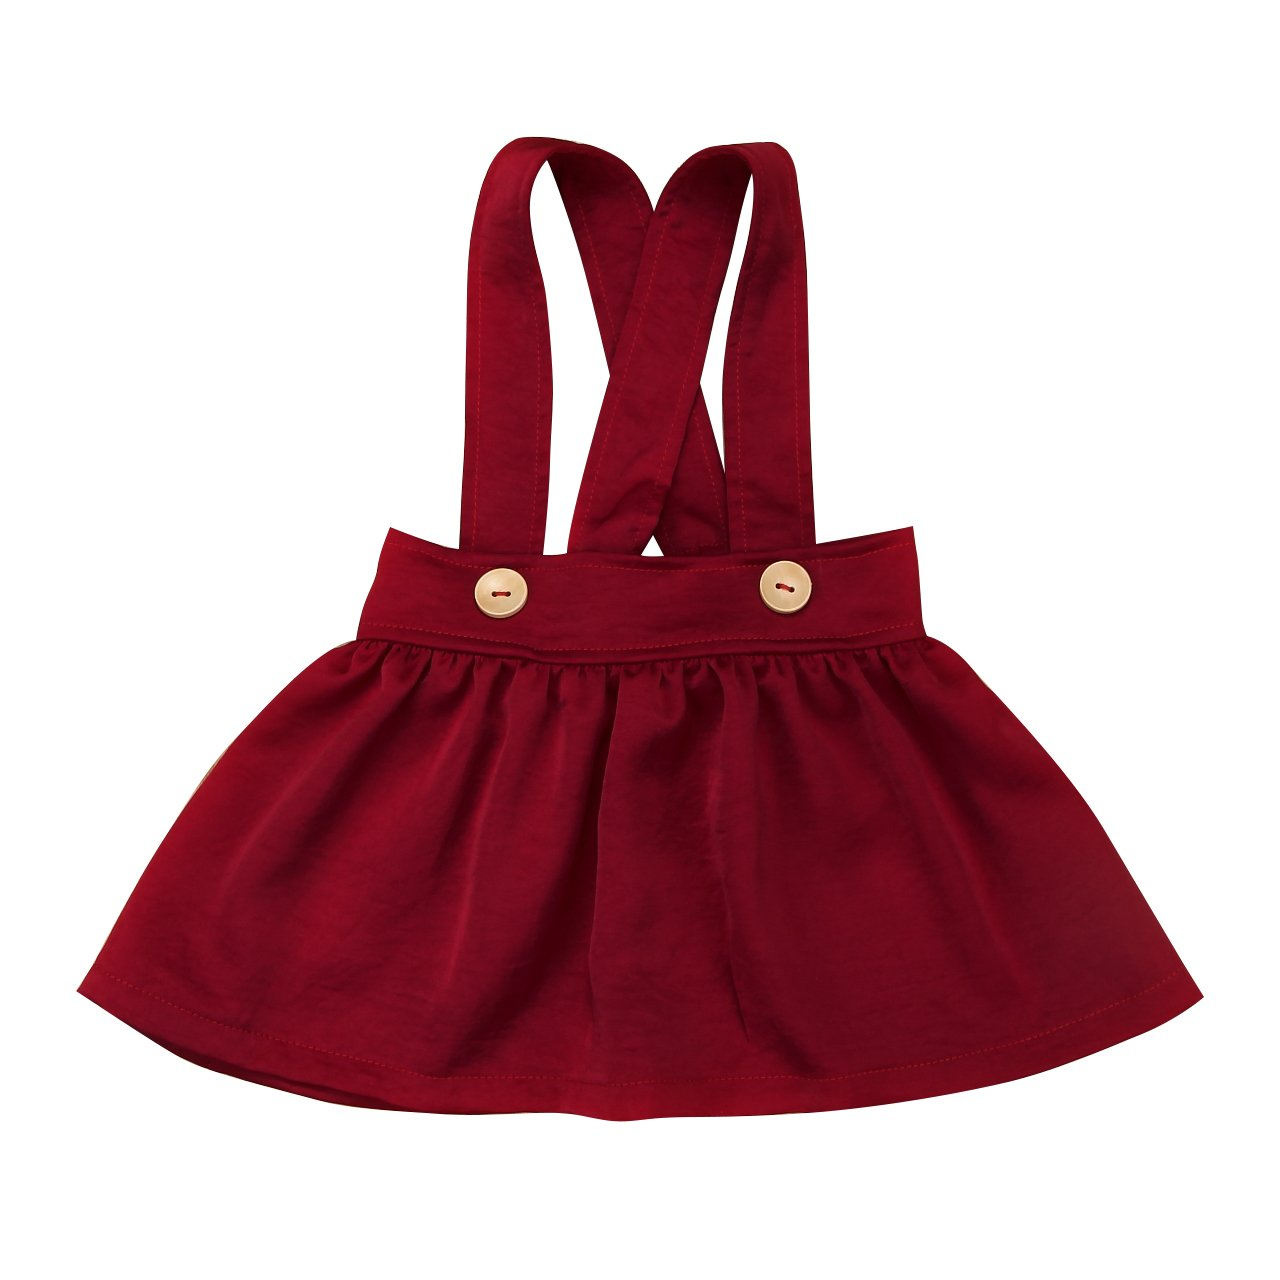 Mornbaby Baby Girl Buttons Suspender Skirt Overall Outfit Brace Summer Dress Clothes